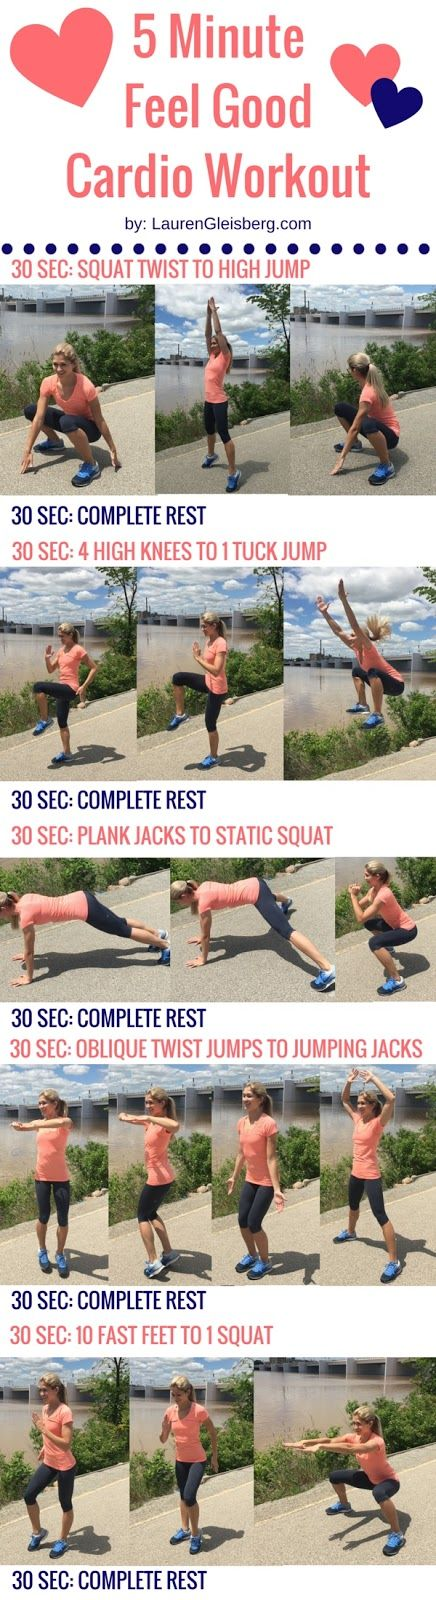 5 MINUTE FEEL GOOD CARDIO WORKOUT: Cardio Workouts, Health Fitness, Workout Program, Fitness Workouts, Workouts Fitness Motivation, Excercises Workouts Stretches, Workouts Legs, Leg Workouts